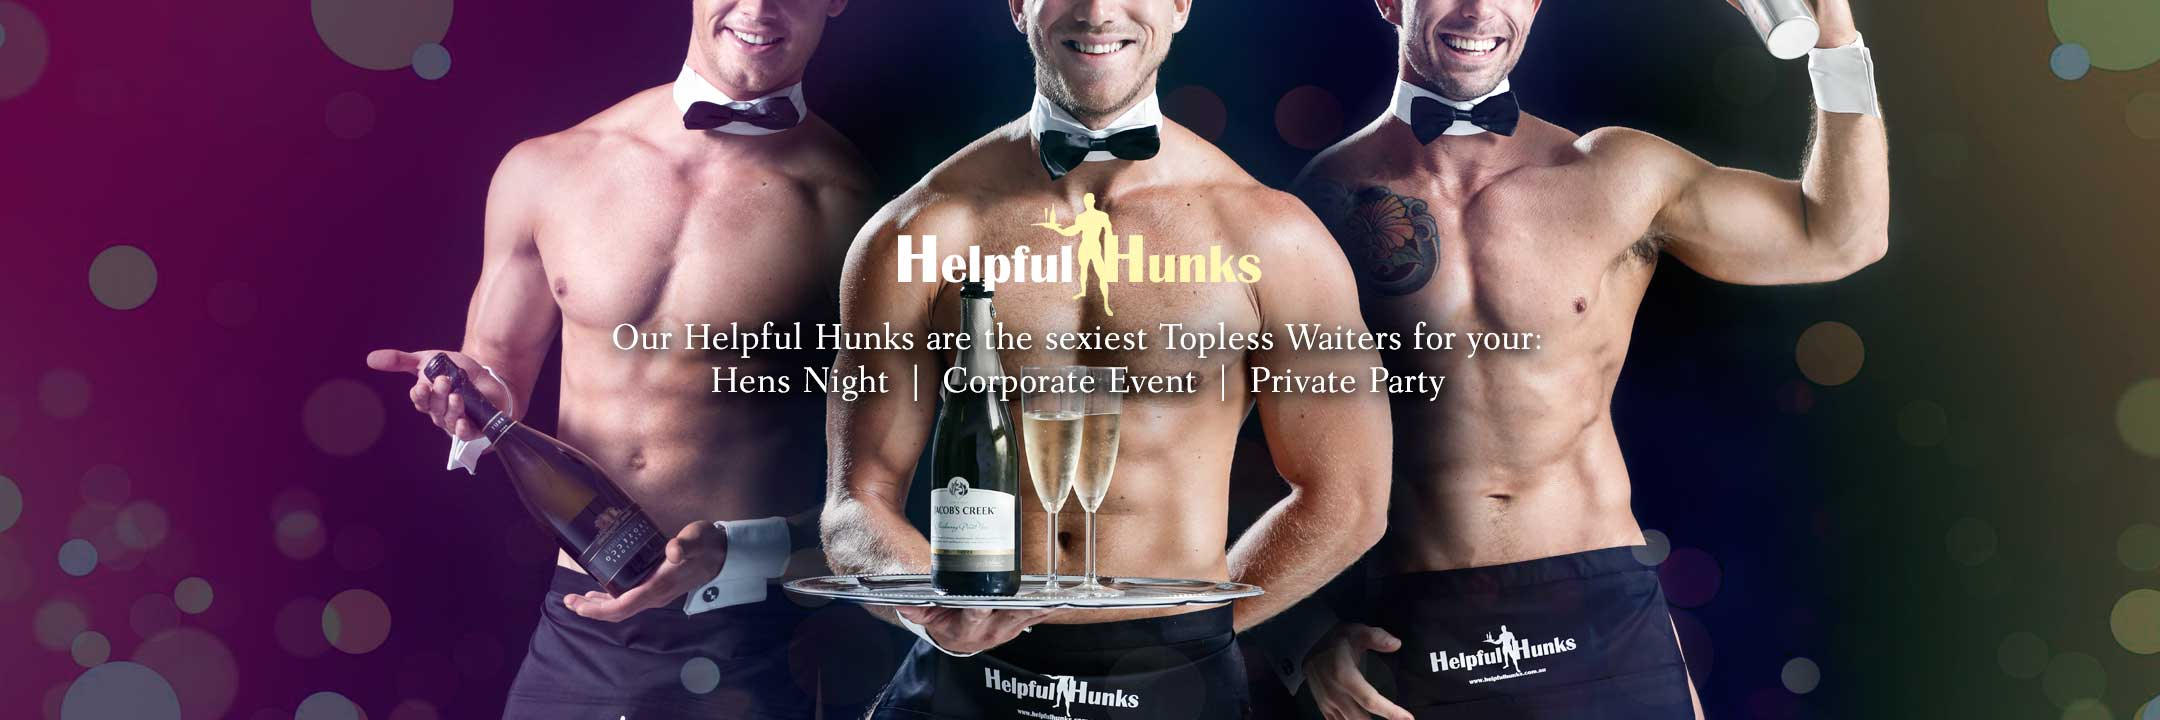 Melbourne Male Strippers ALT1